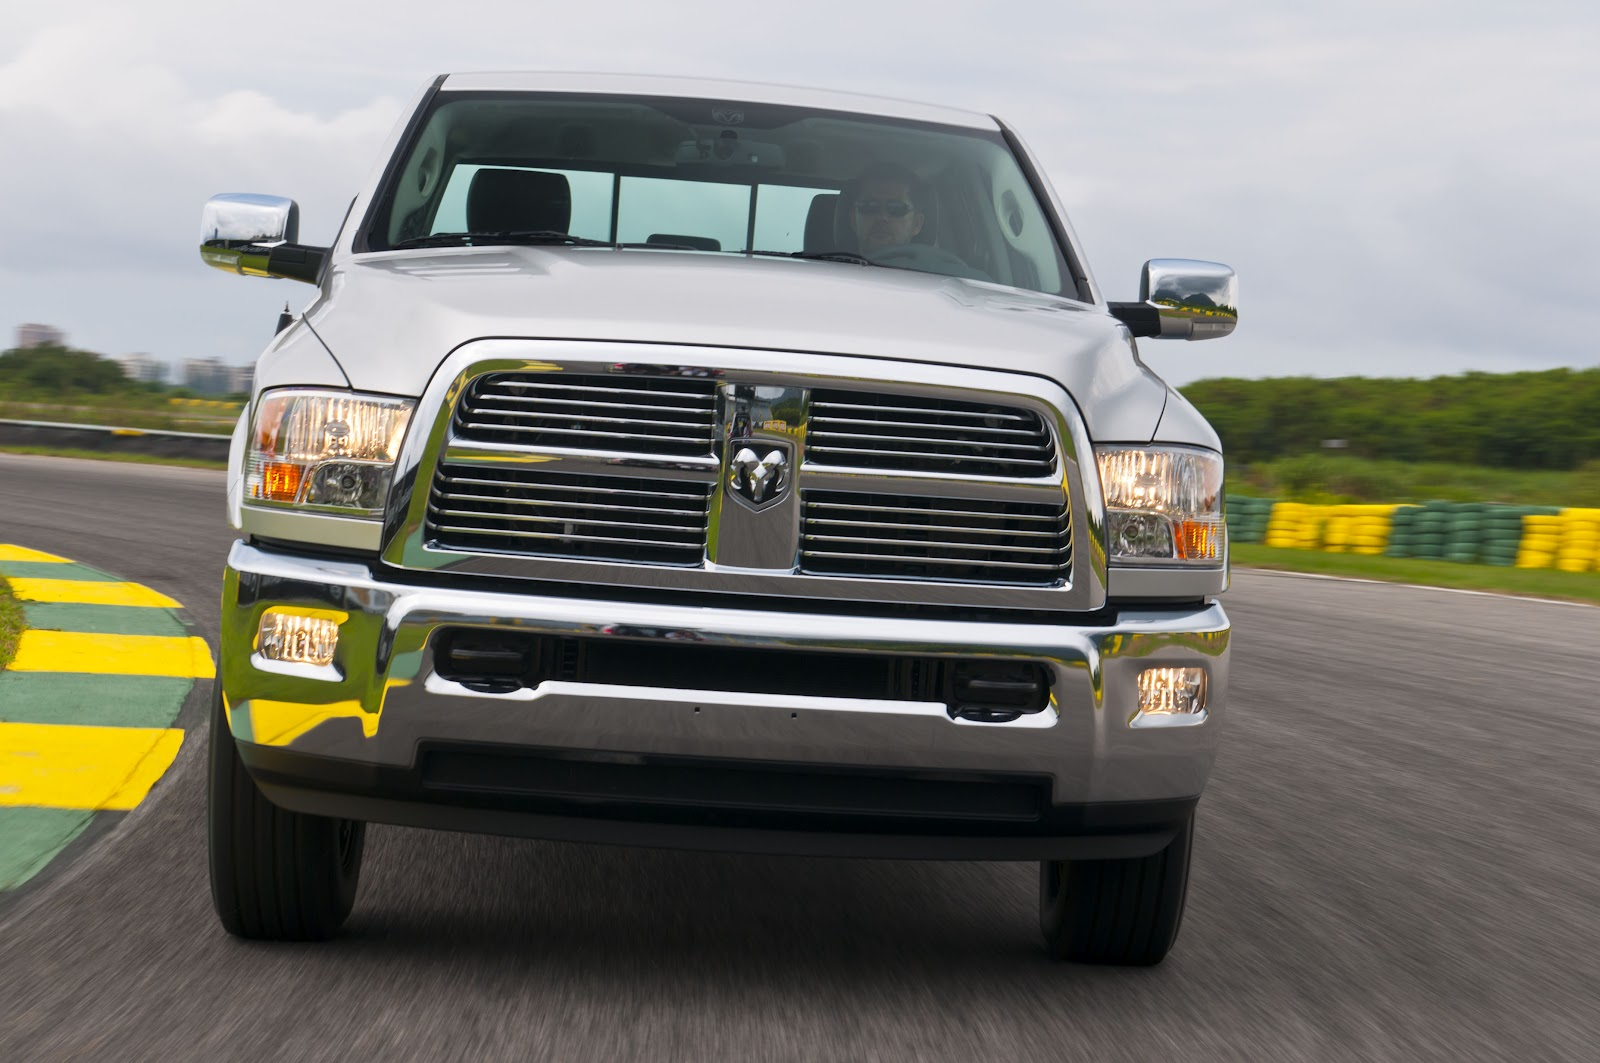 2013 Ram 2500 Hemi Vs Ford F250 | Autos Weblog